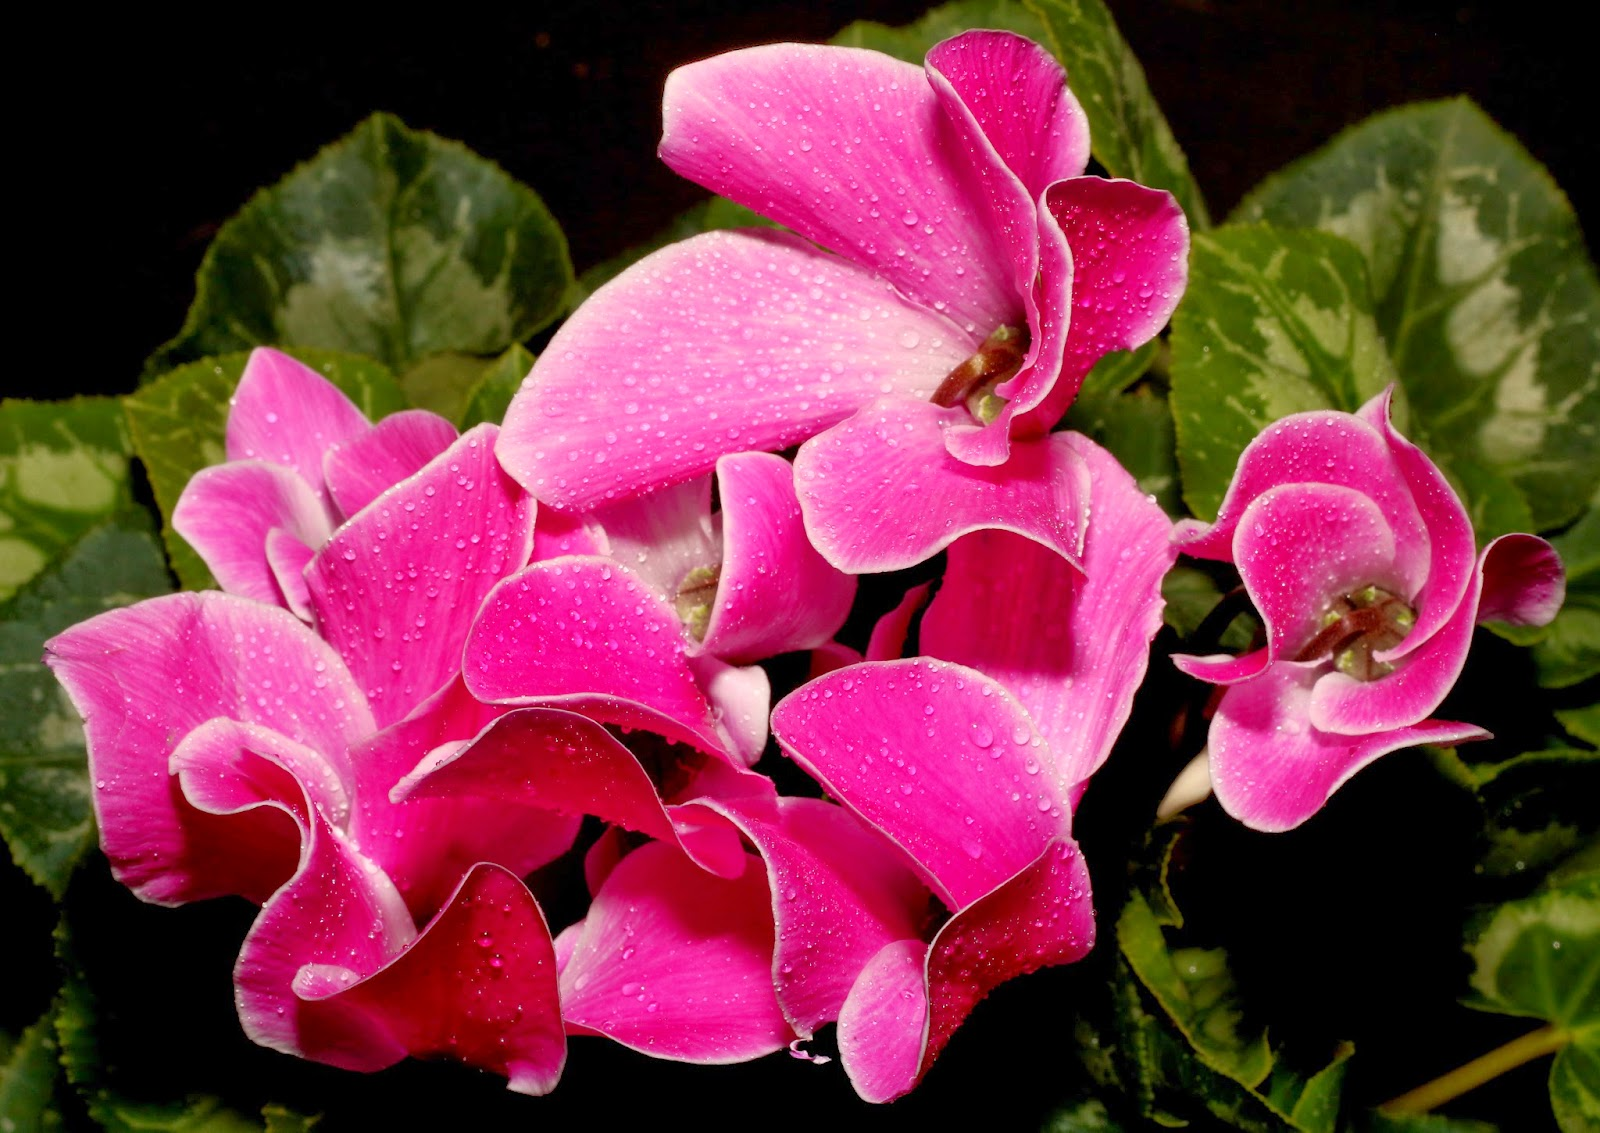 Cyclamen Flower Photo Project: With Canon EOS 70D and EF 50mm f/1.8 II Lens Photo: © Vernon Chalmers